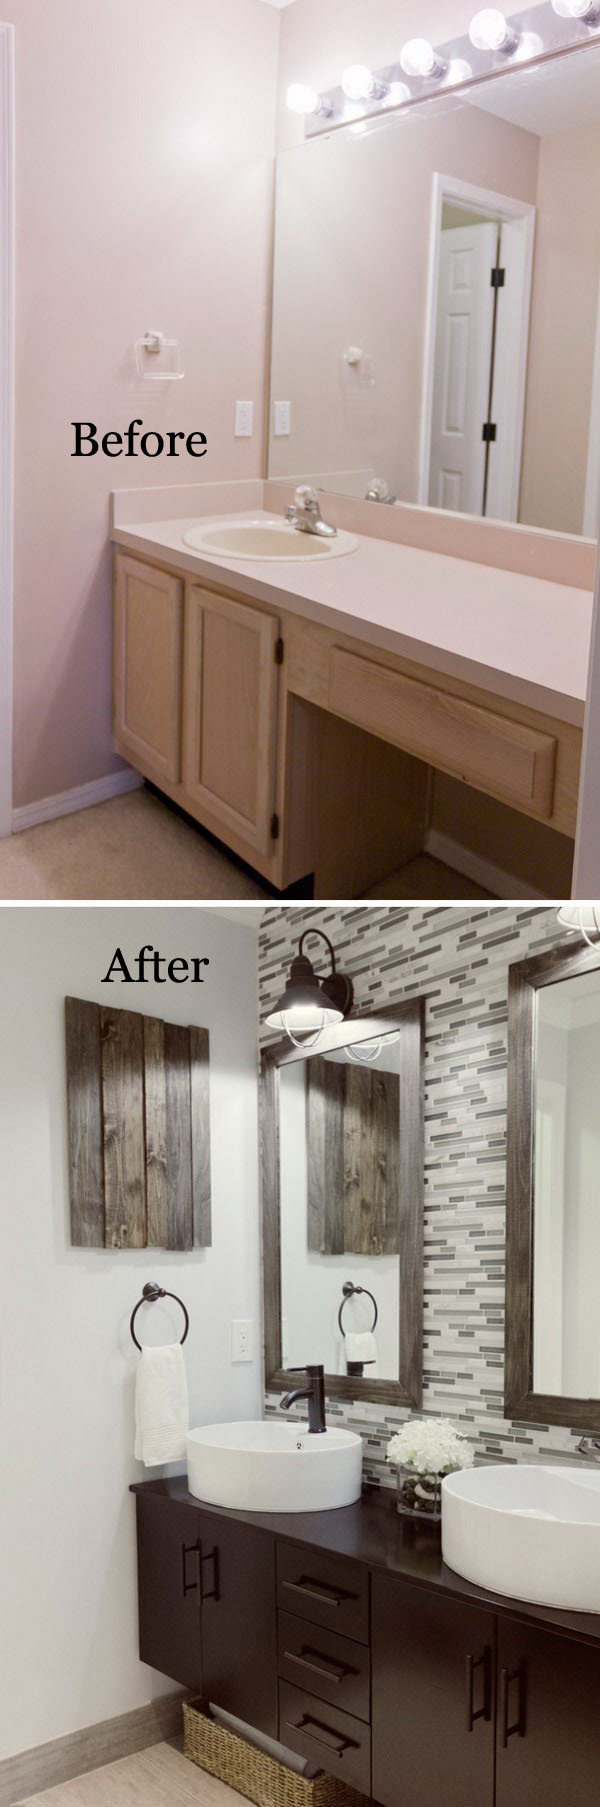 Before and after 20 awesome bathroom makeovers hative for Images of bathroom remodel ideas